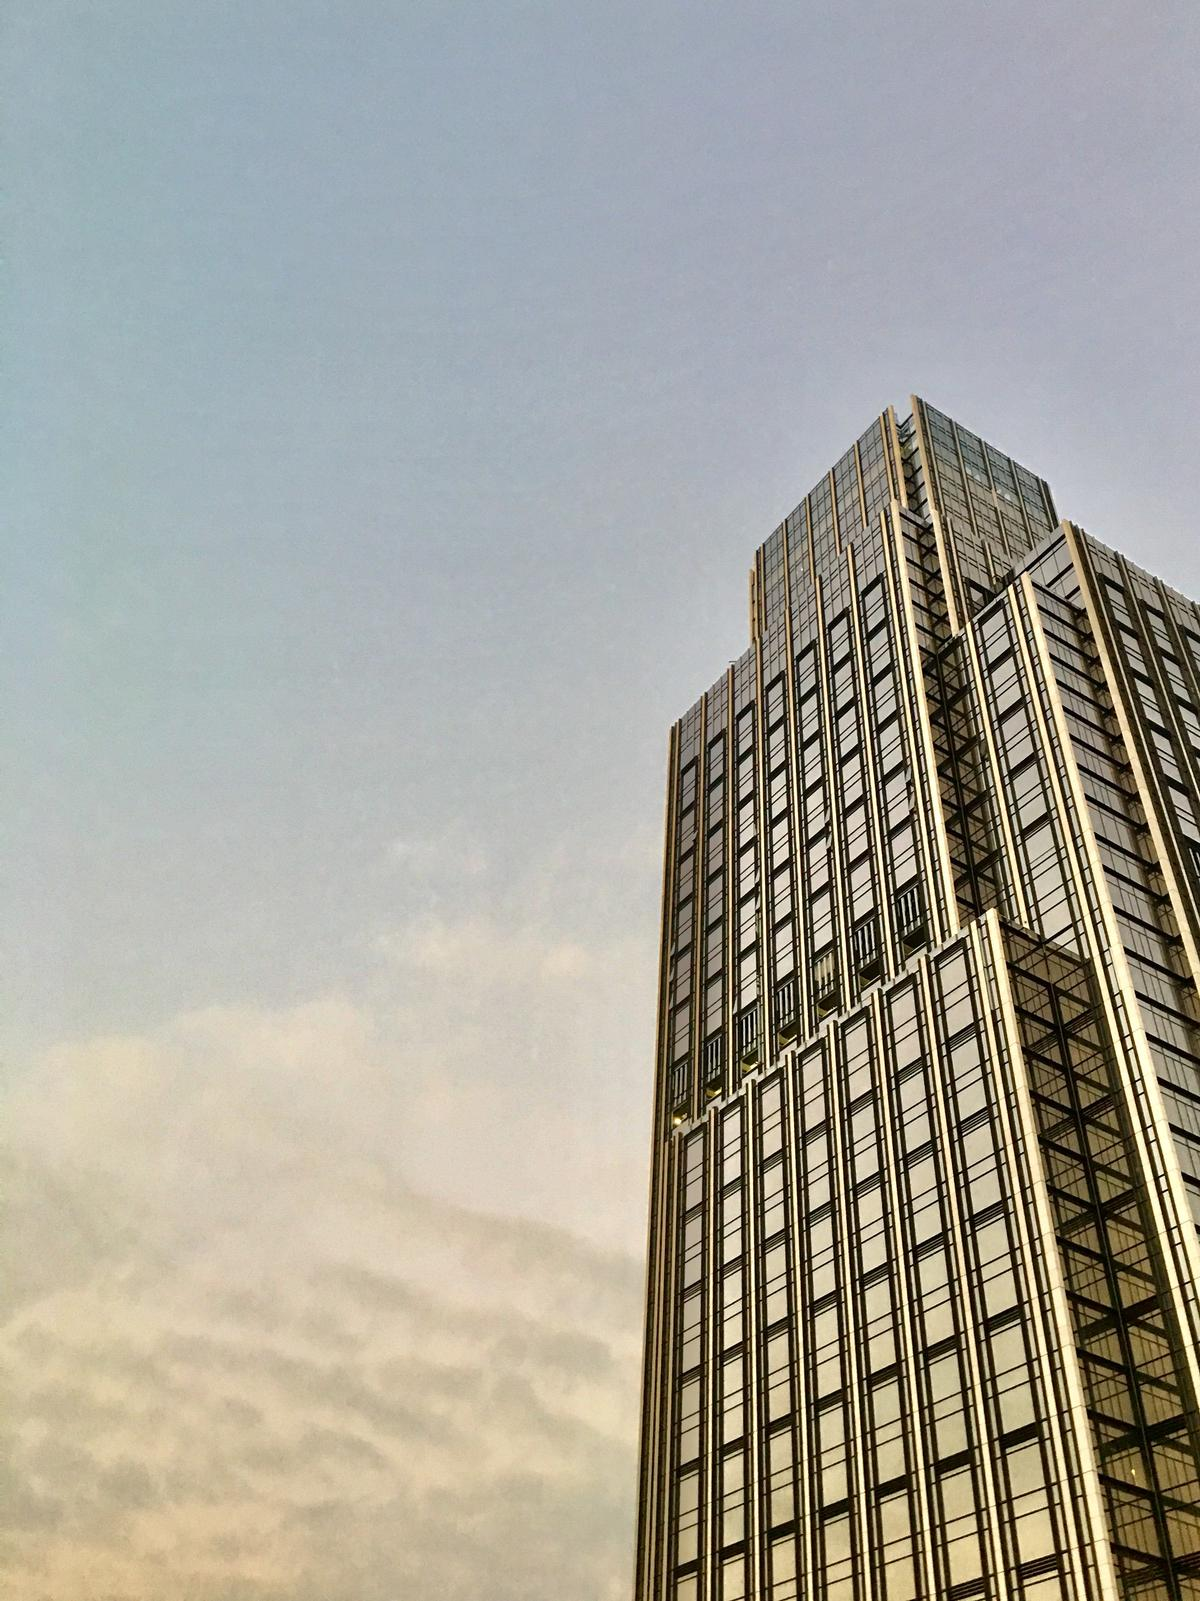 The tower incorporates Portuguese limestone accented with bronze trims / New World Development